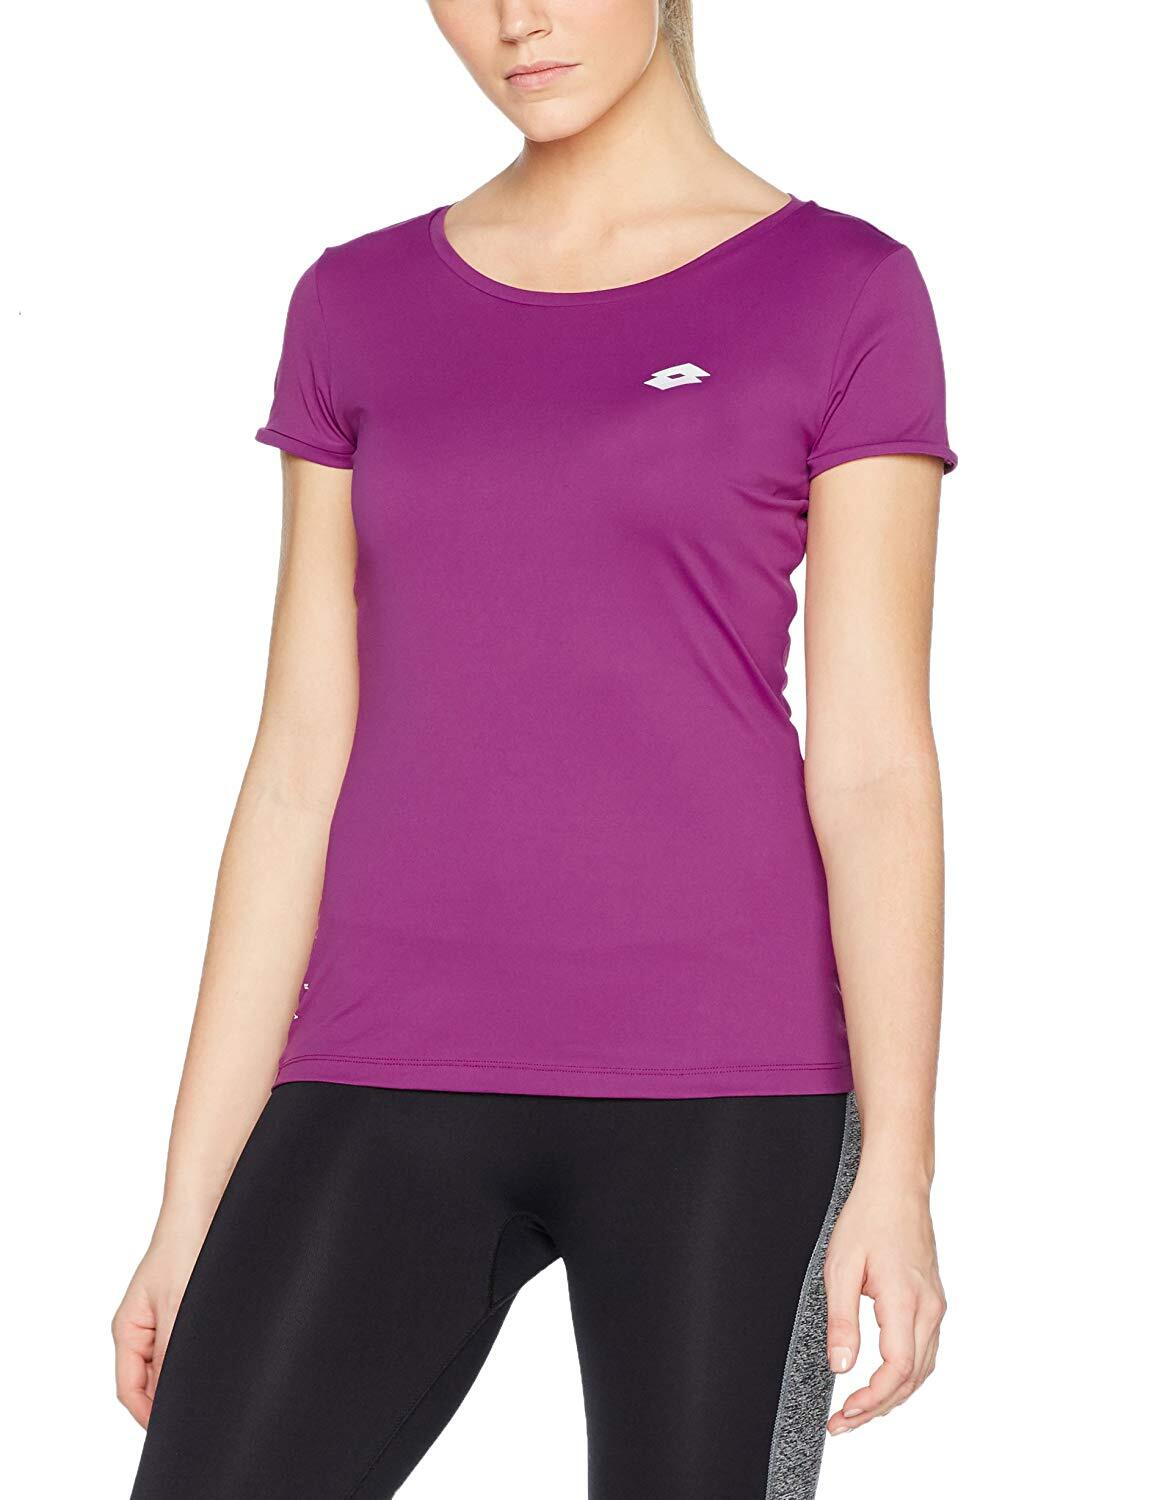 Lotto Women's Ursula V Tee Shirt PL Sports Fitness Tennis Training - Tropea